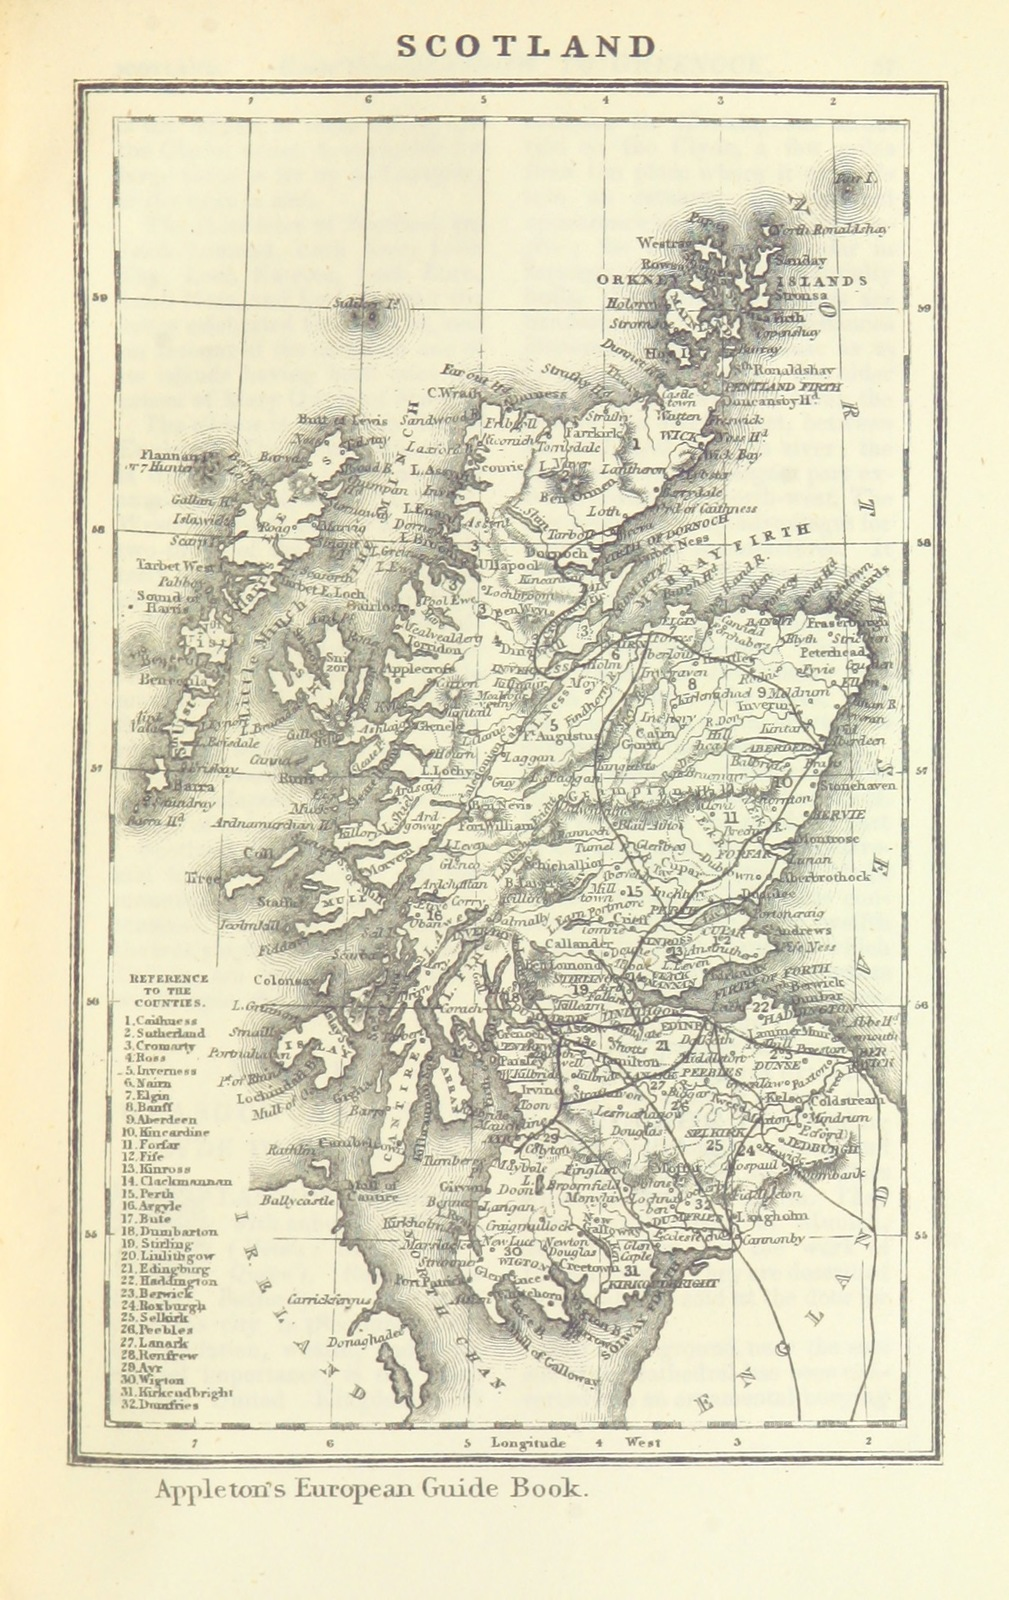 Map Of England France And Italy.Map From Appleton S European Guide Book Illustrated Including